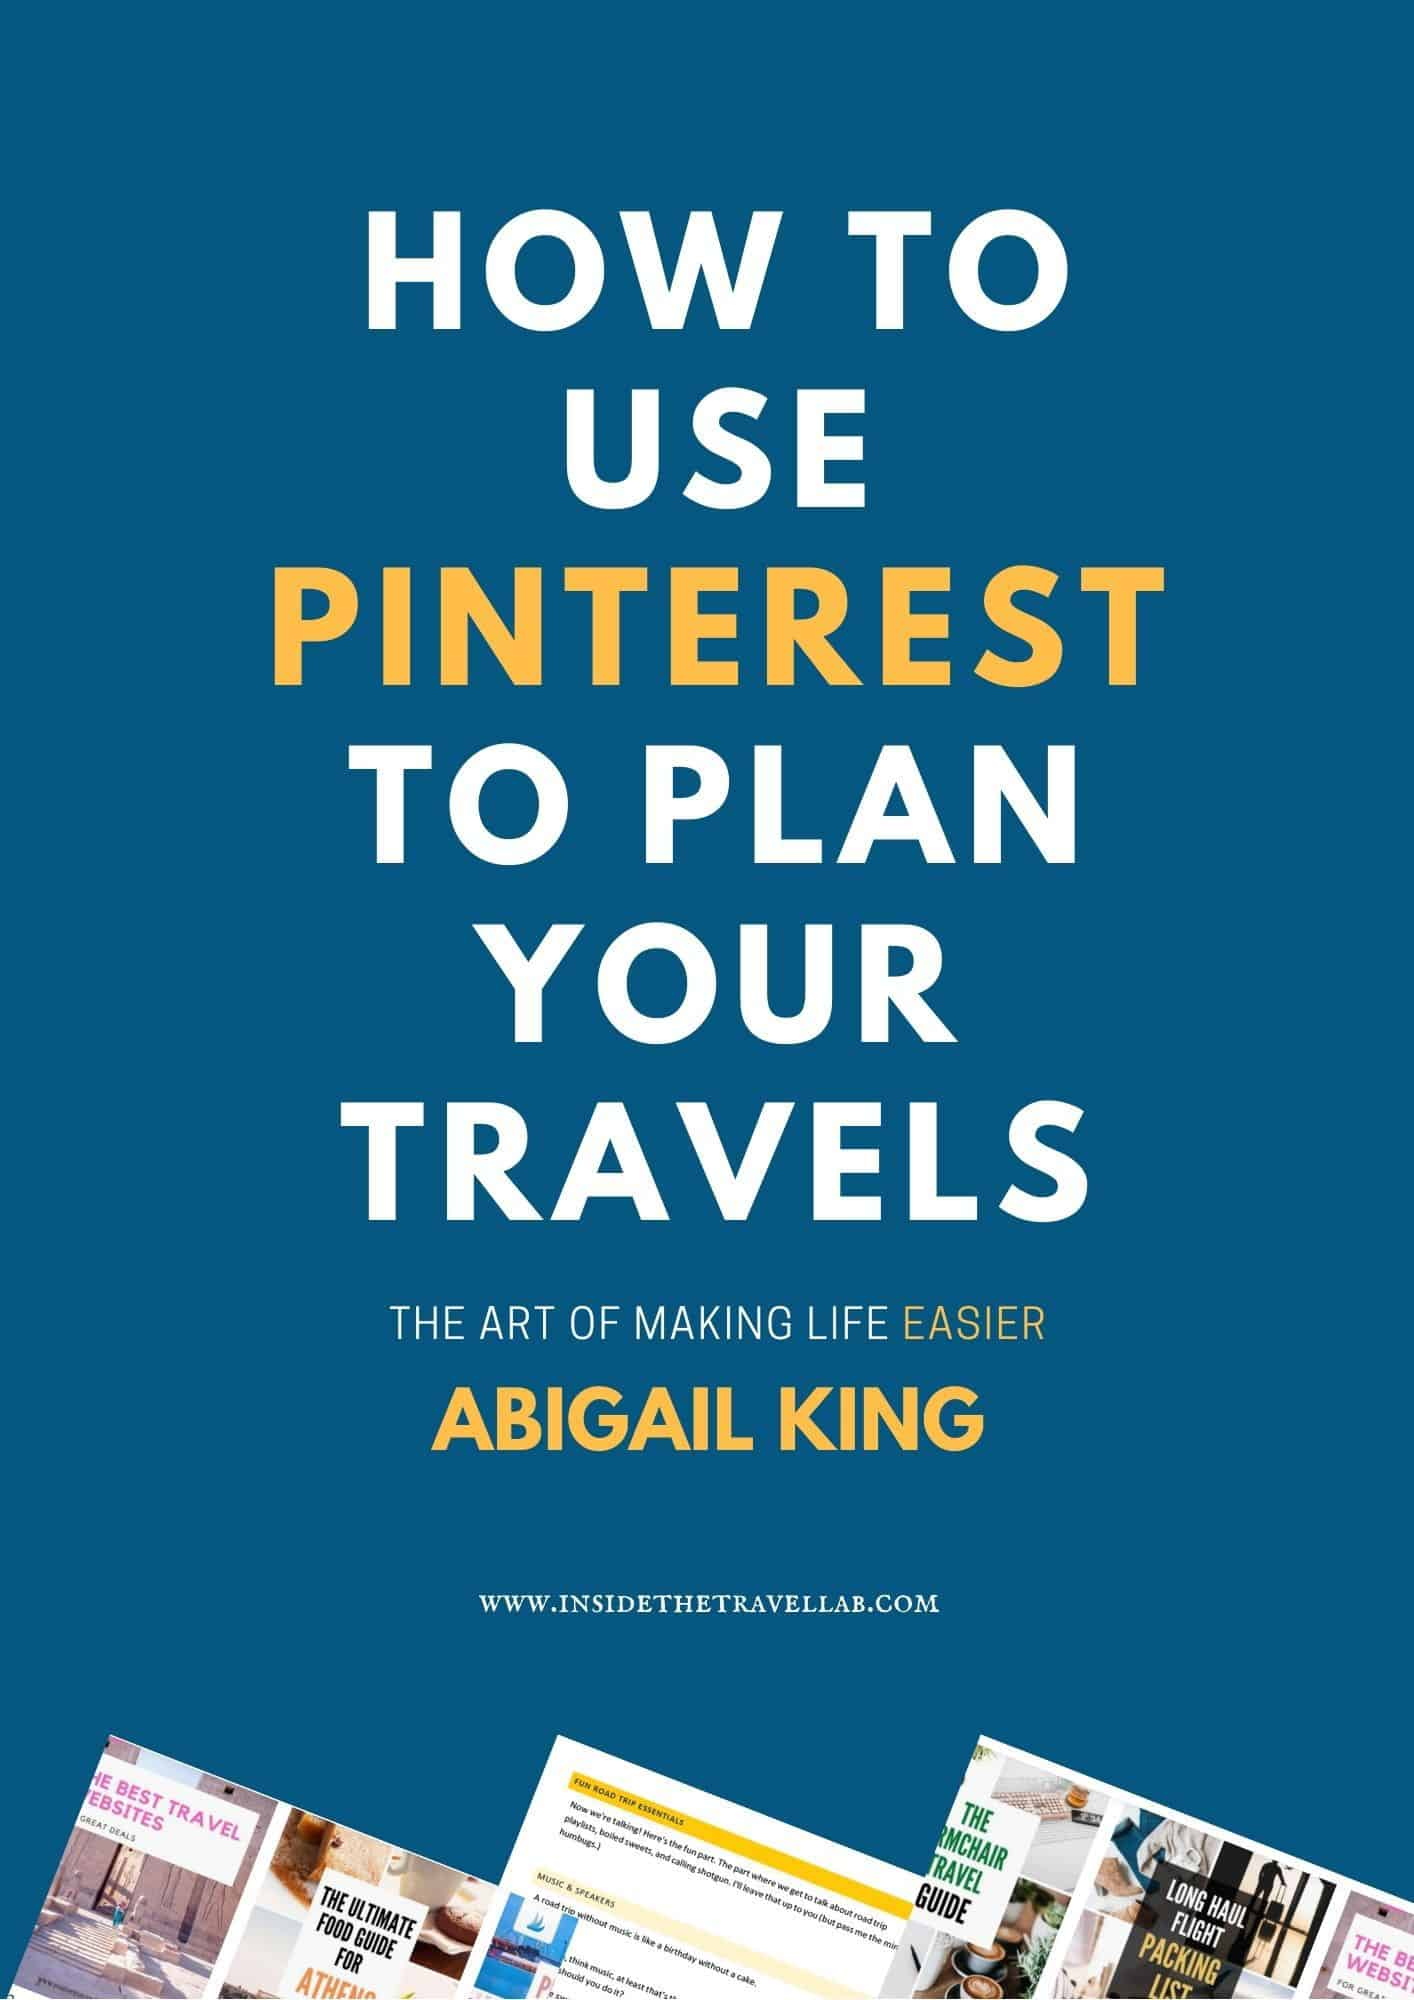 How to use Pinterest to plan your travels